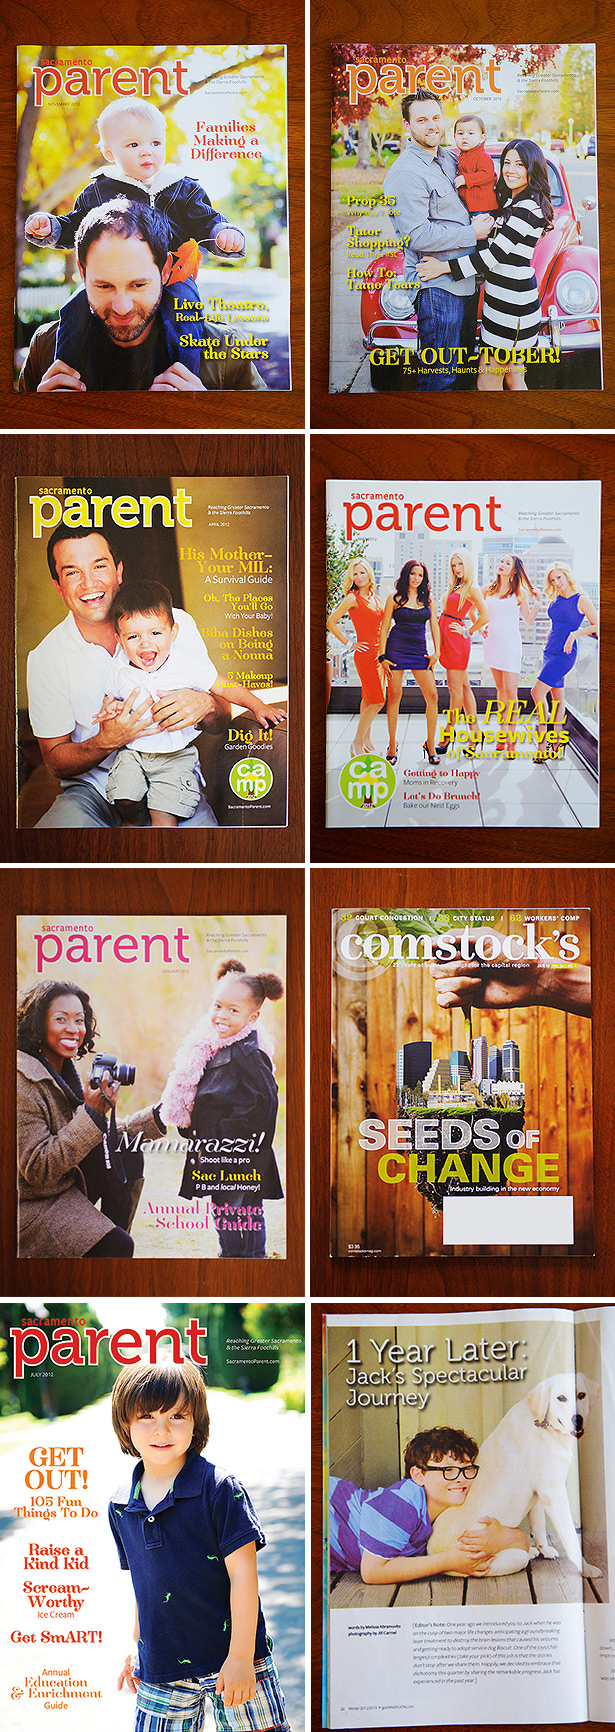 published eight times in 2012 sacramento parent magazine comstocks dandelion